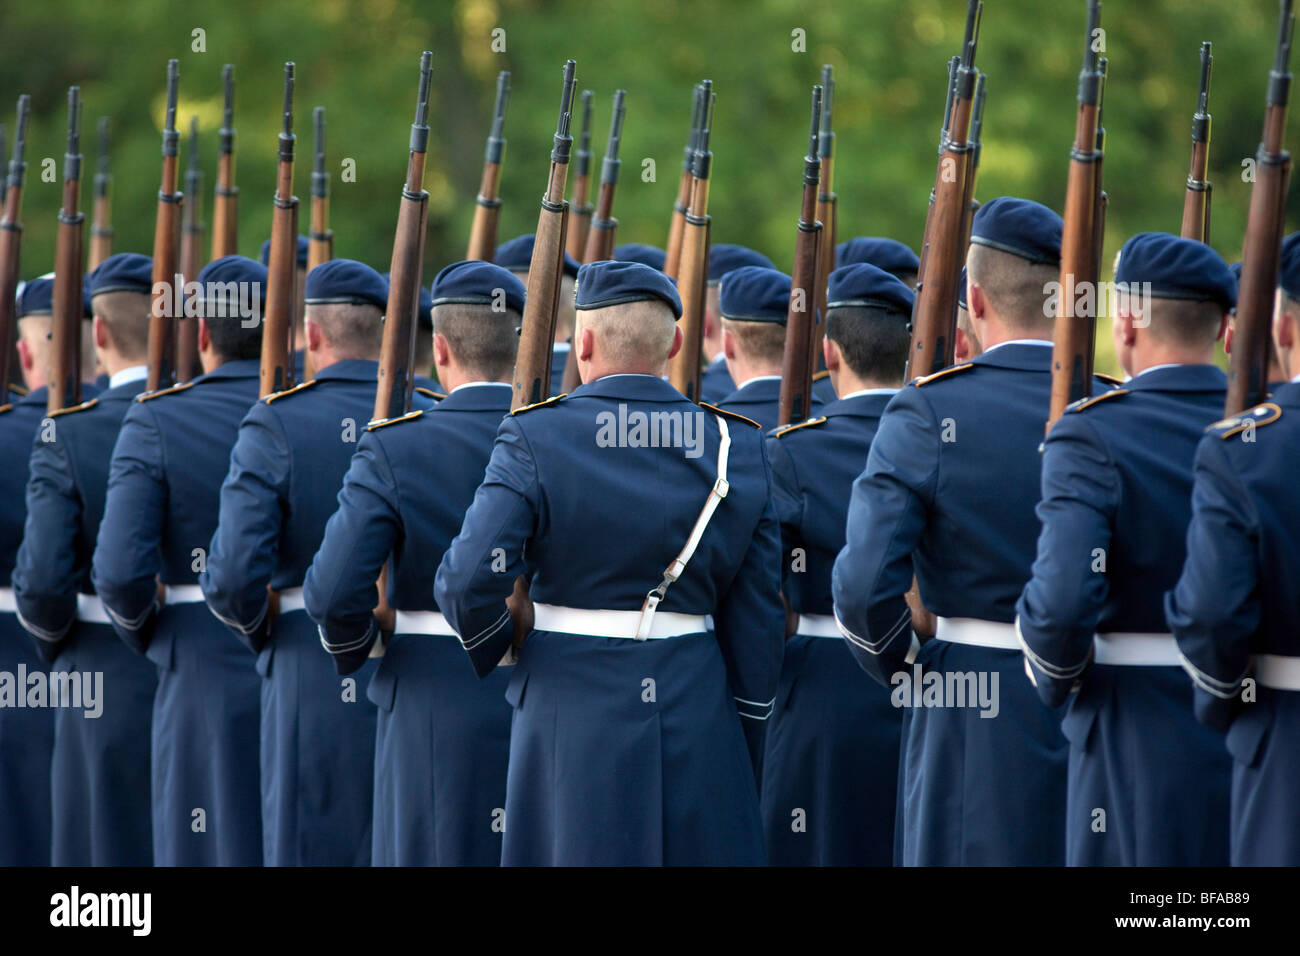 Conscript army of the German armed forces in the Castle Bellevue, Germany - Stock Image